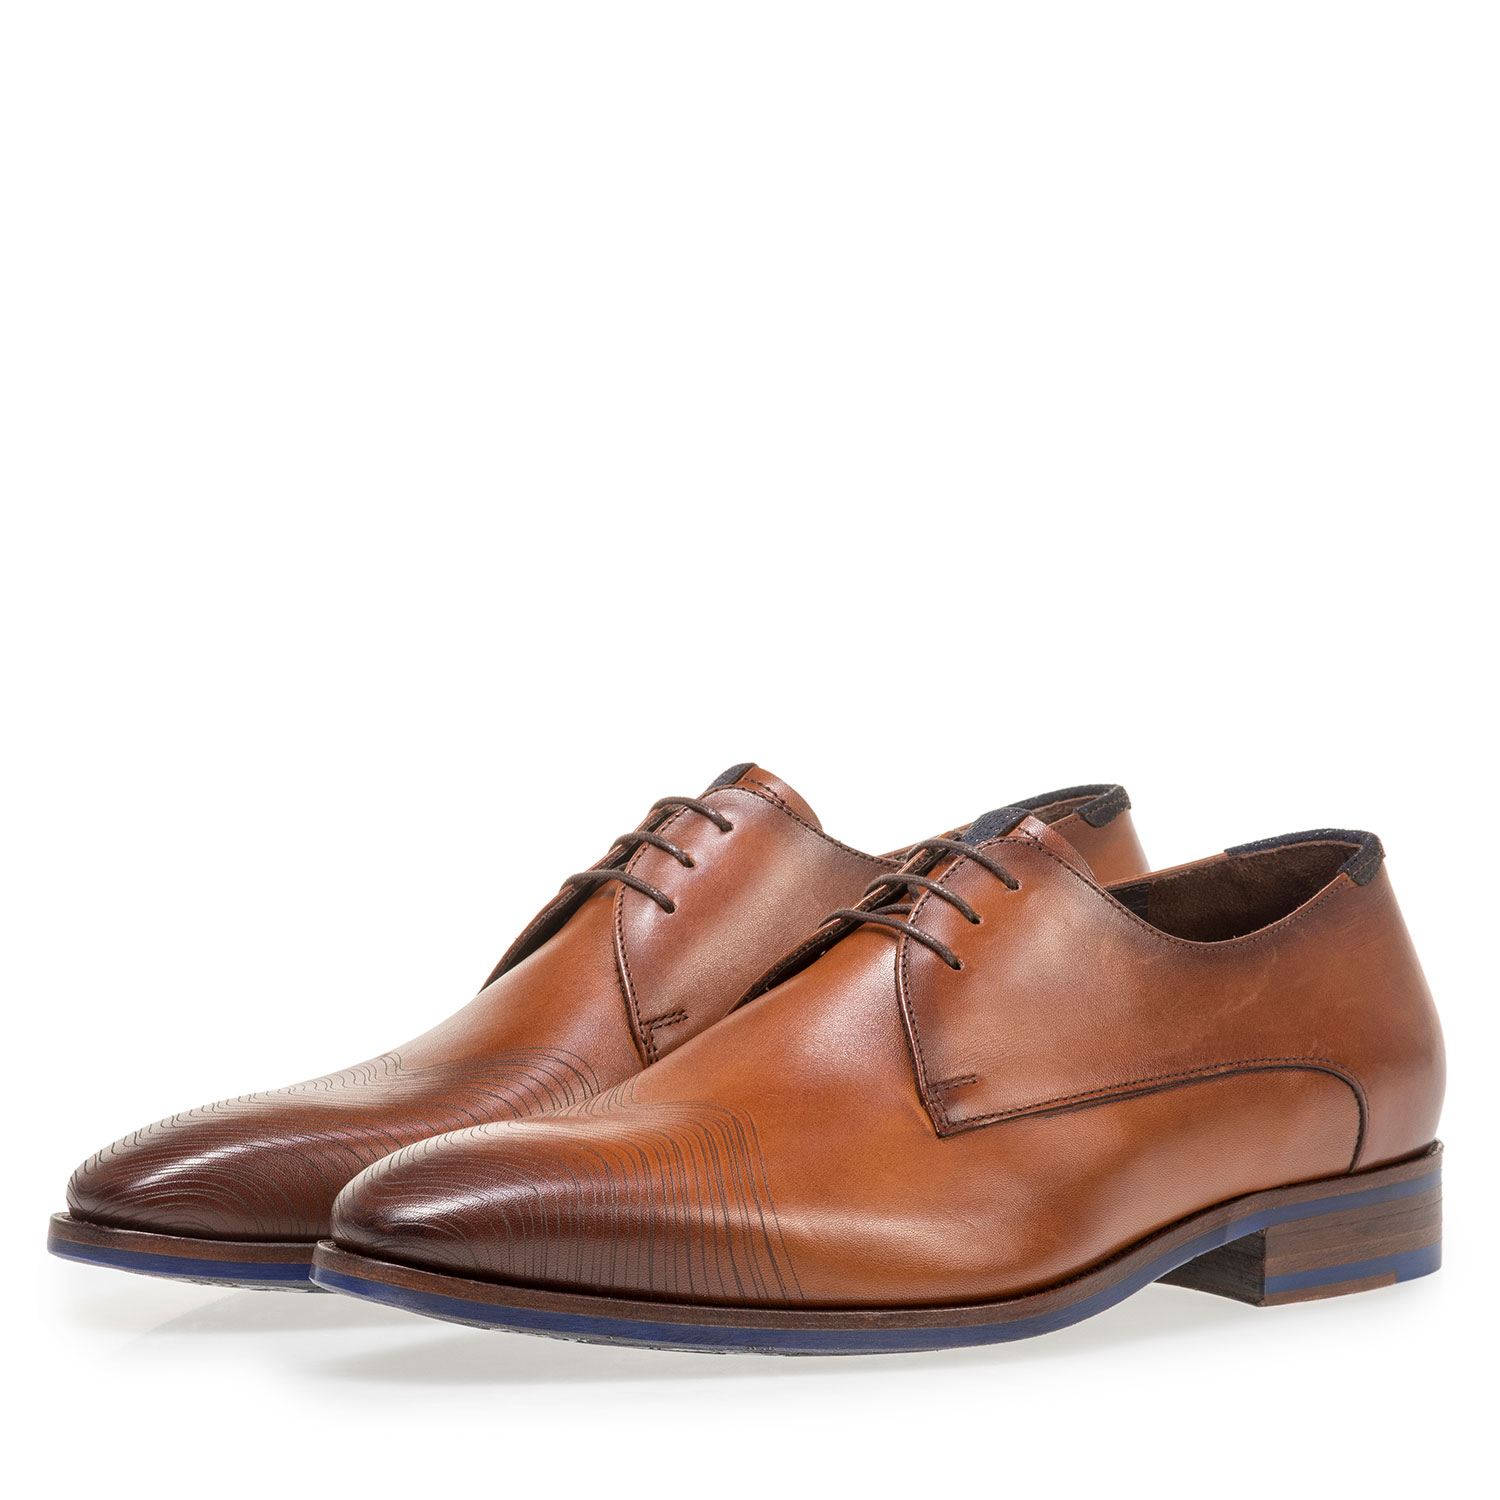 18288/00 - Dark cognac-coloured calf leather lace shoe